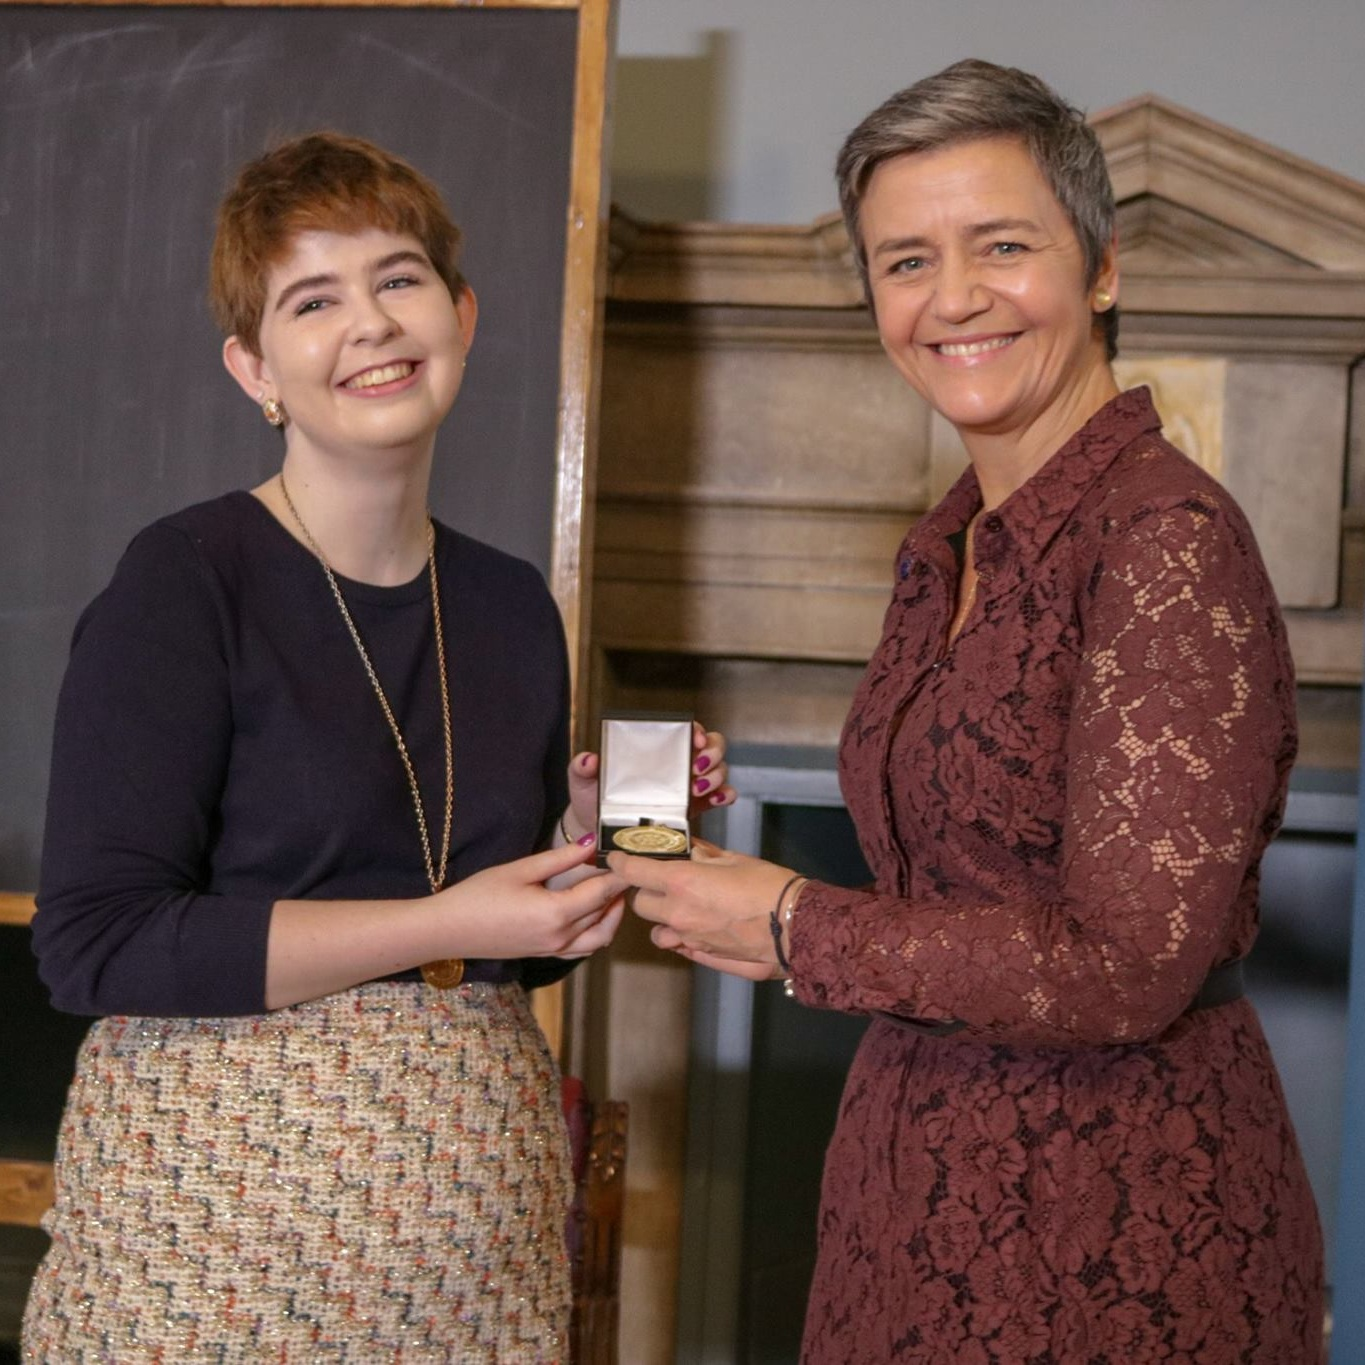 Margrethe Vestager awarded the Hist's Gold Medal Gold for her contribution to public discourse